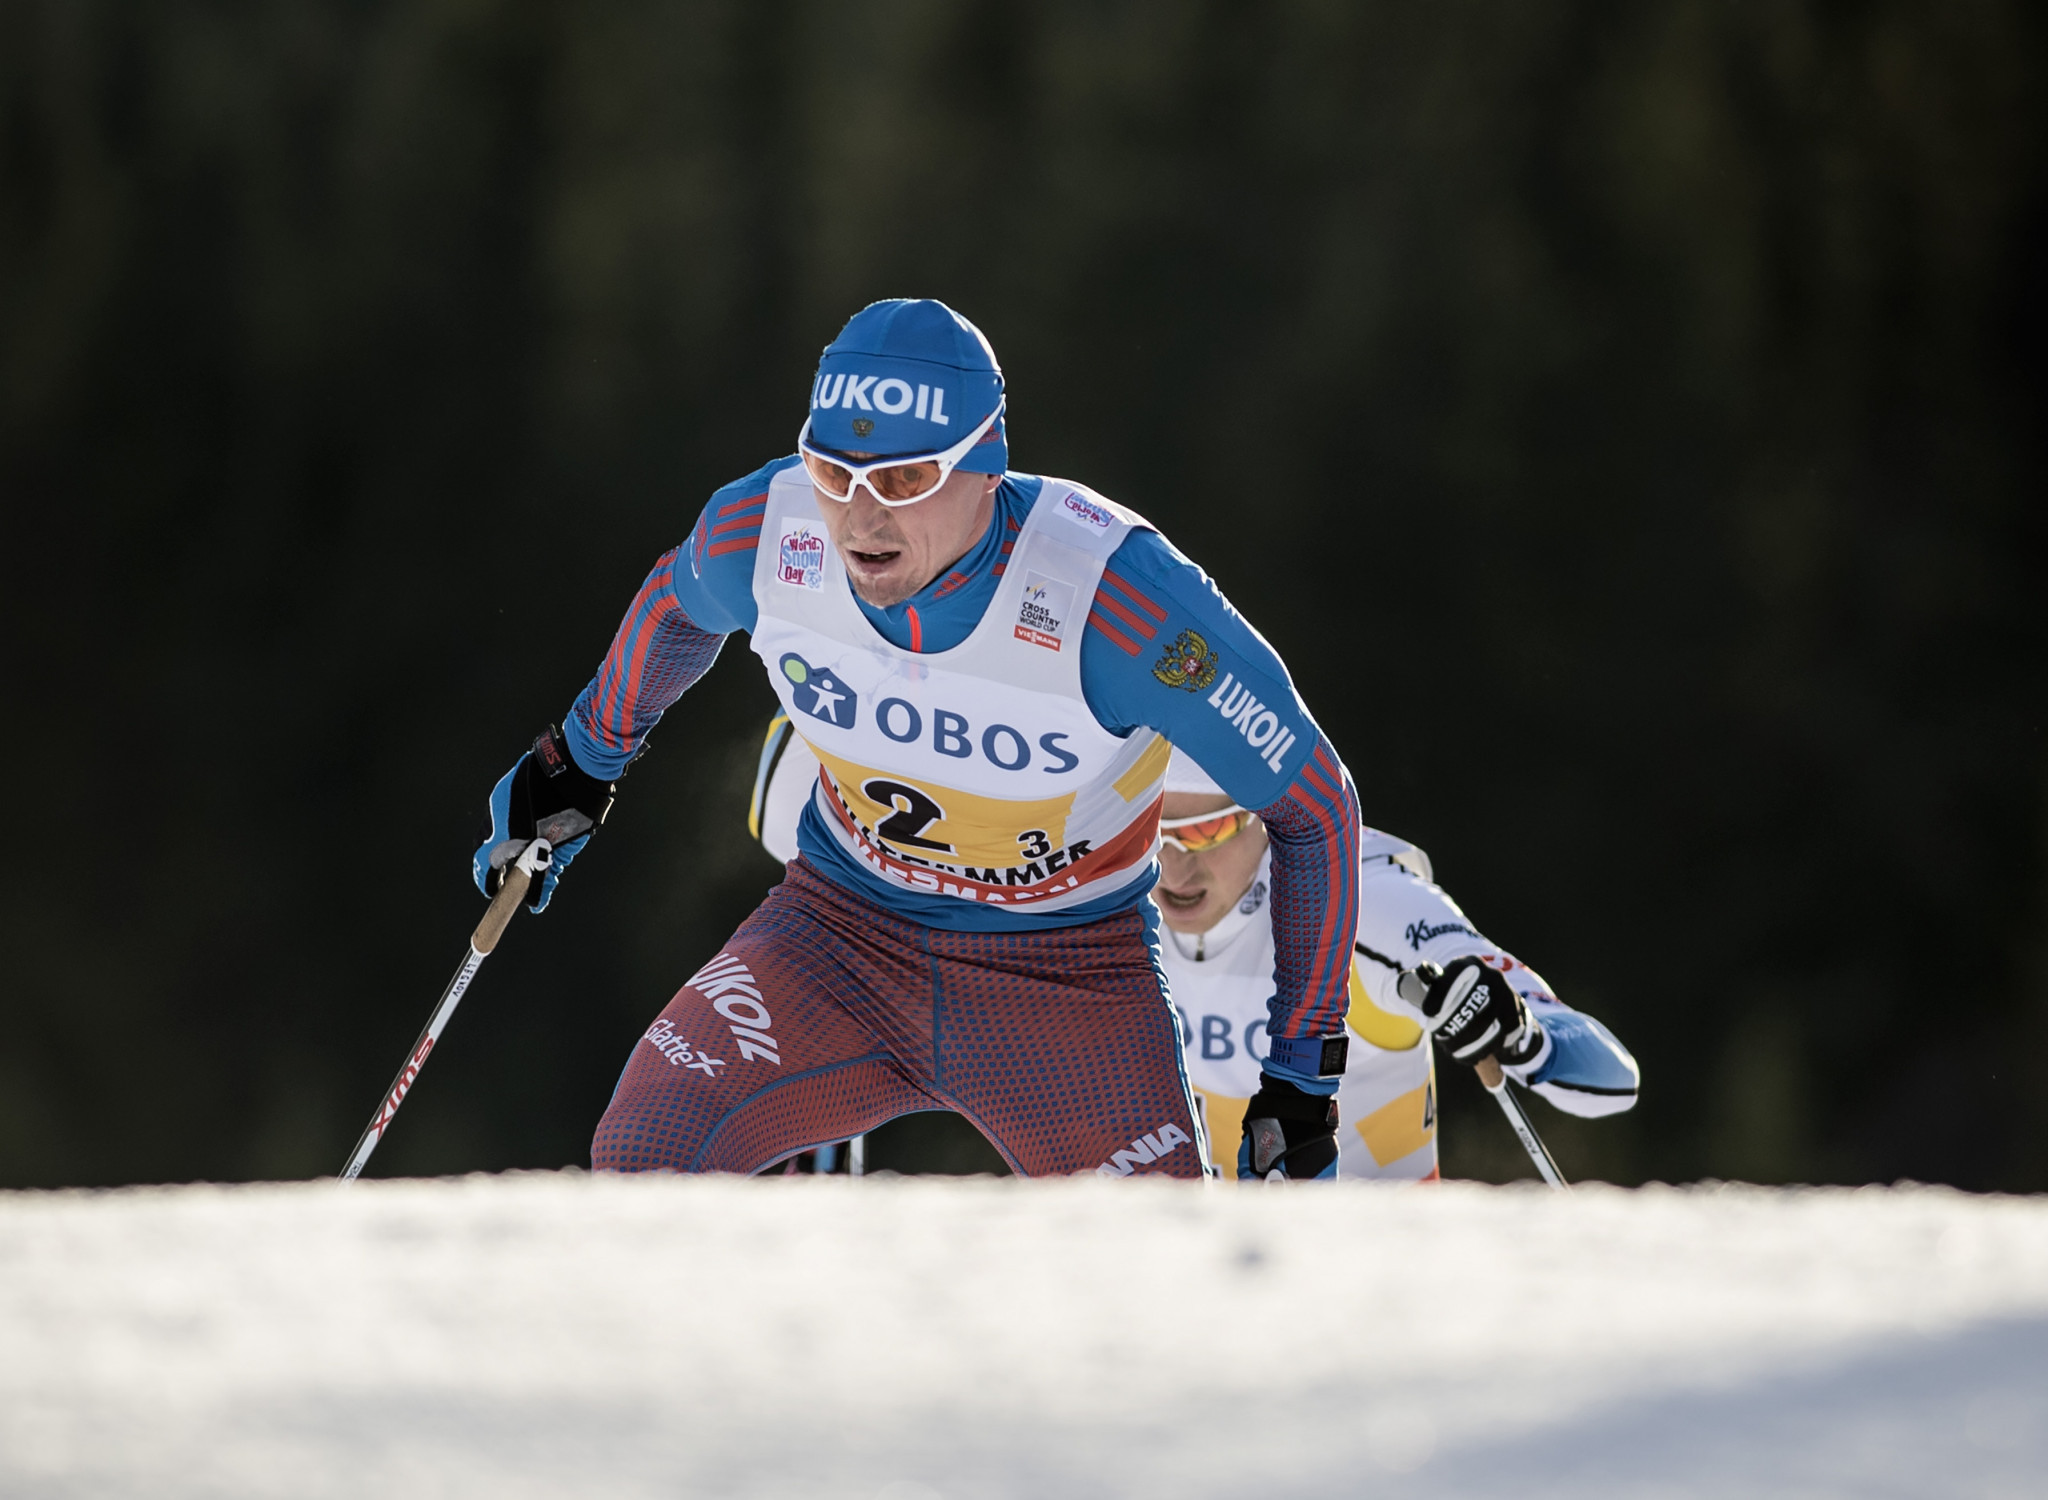 The disqualification of Russian skiers, including Alexander Legkov last week, left more questions than answers ©Getty Images